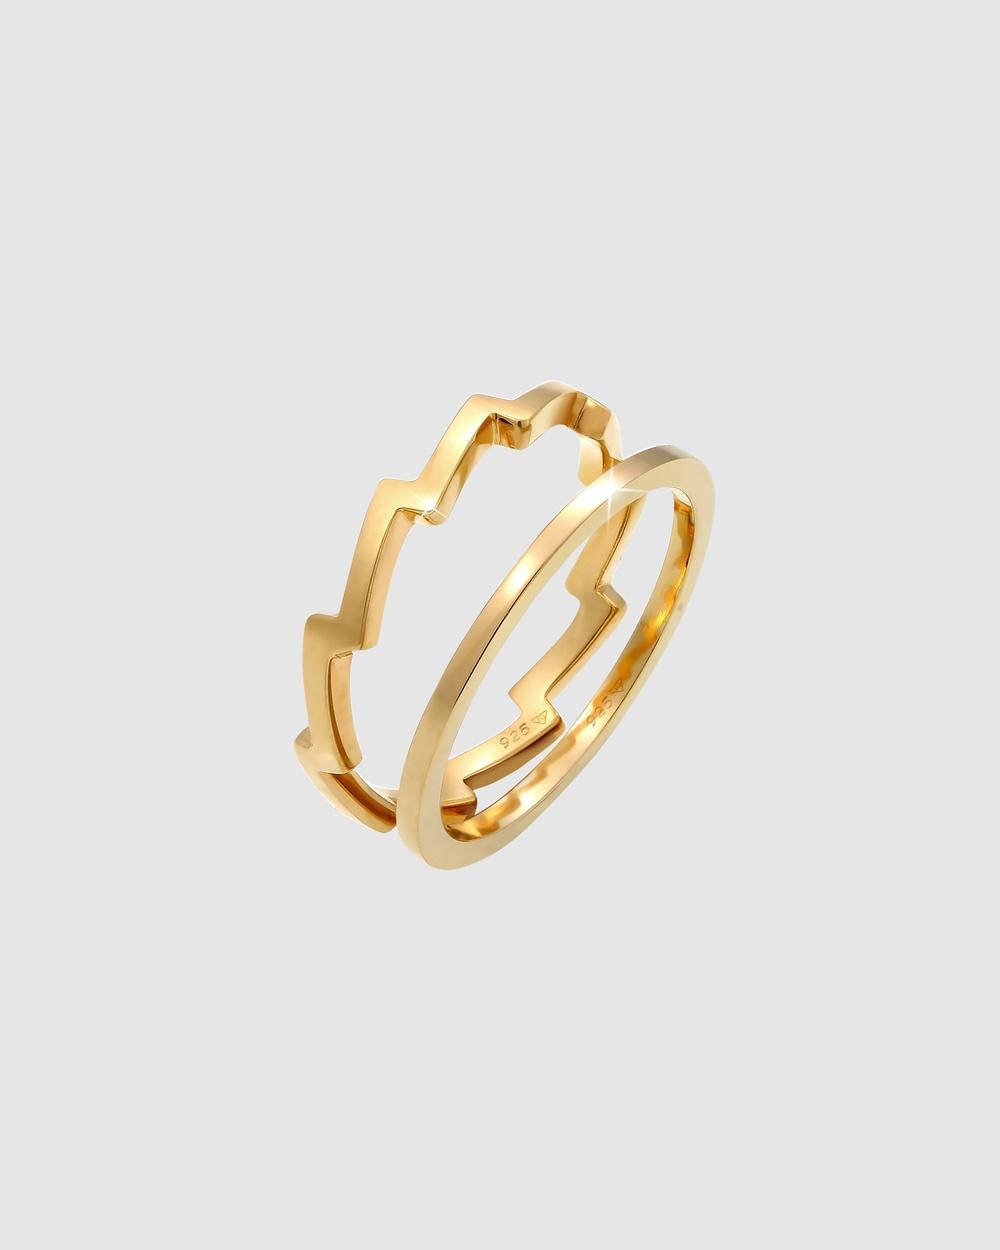 Elli Jewelry Ring Set Geo Look Basic Minimalist Trend Blogger in 925 Sterling Silver Gold Plated Jewellery Gold